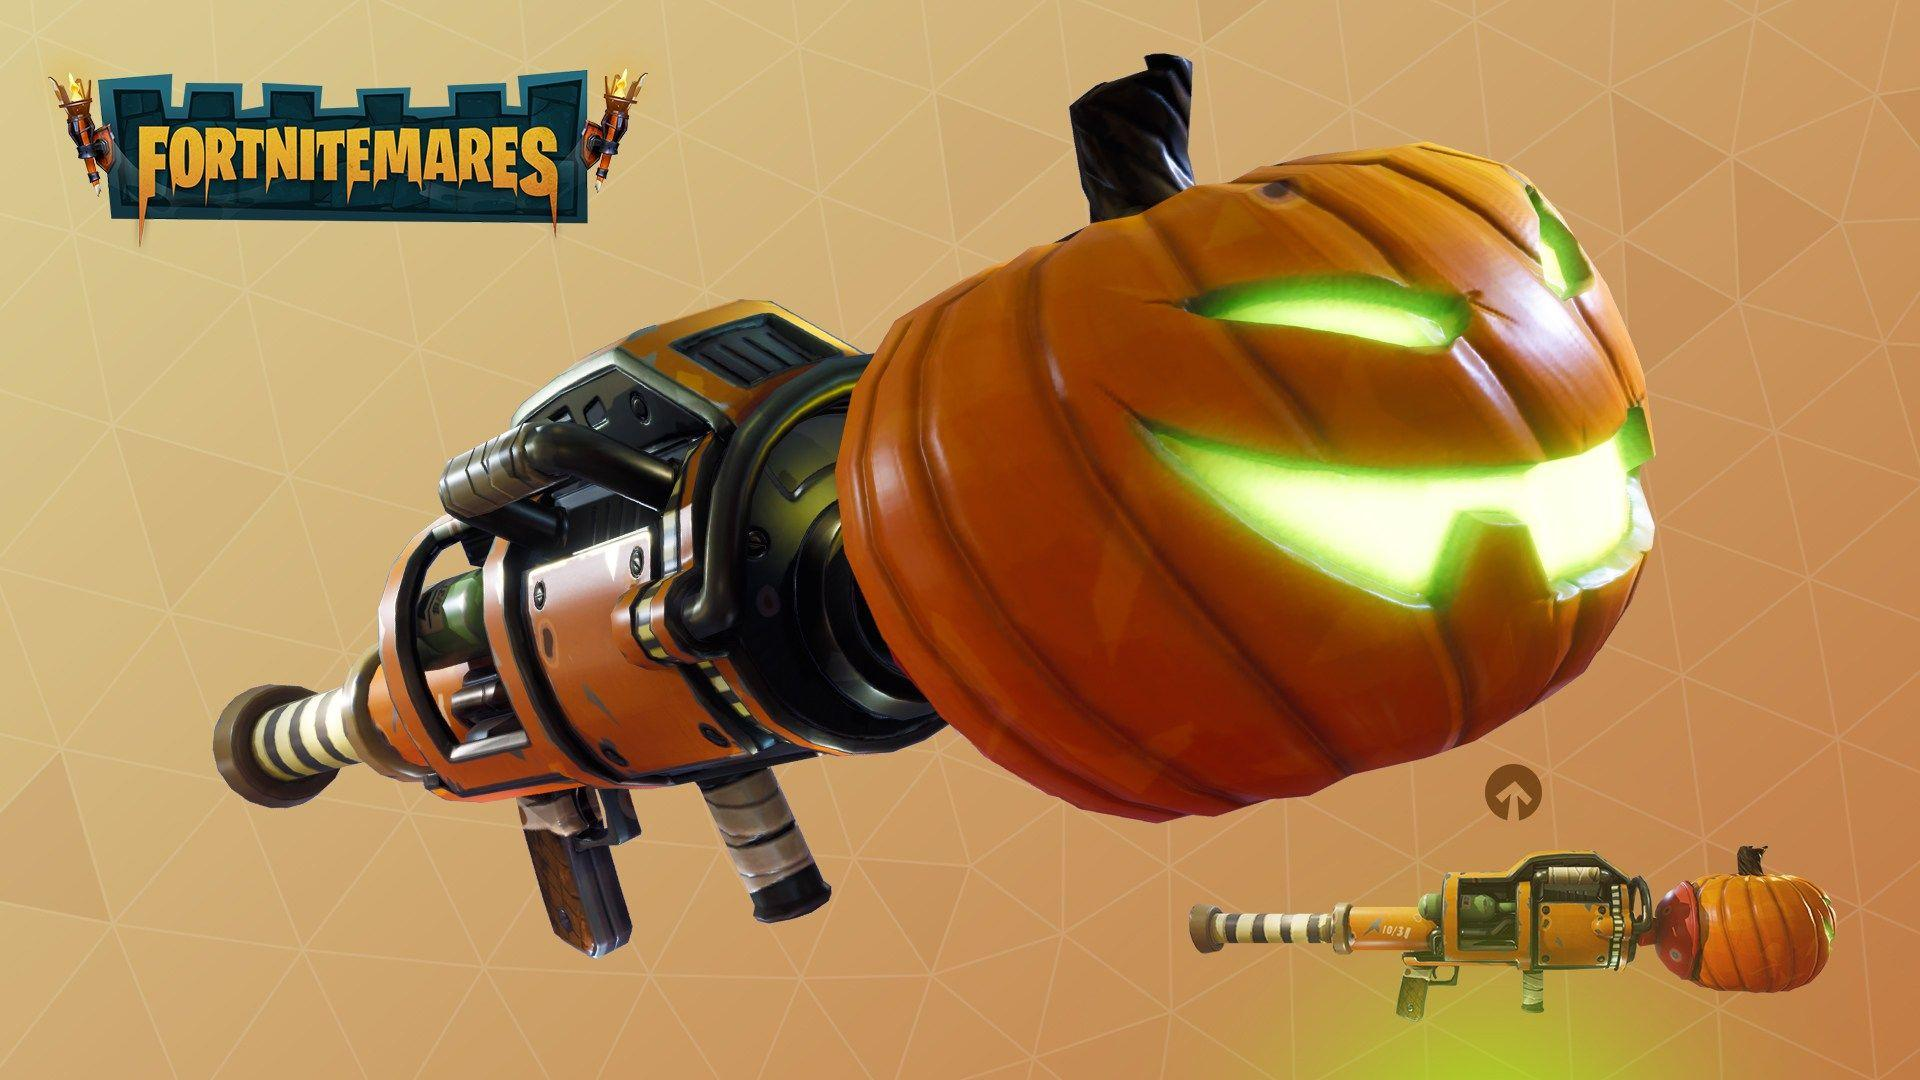 Fortnite – Fortnitemares Update & Patch Notes